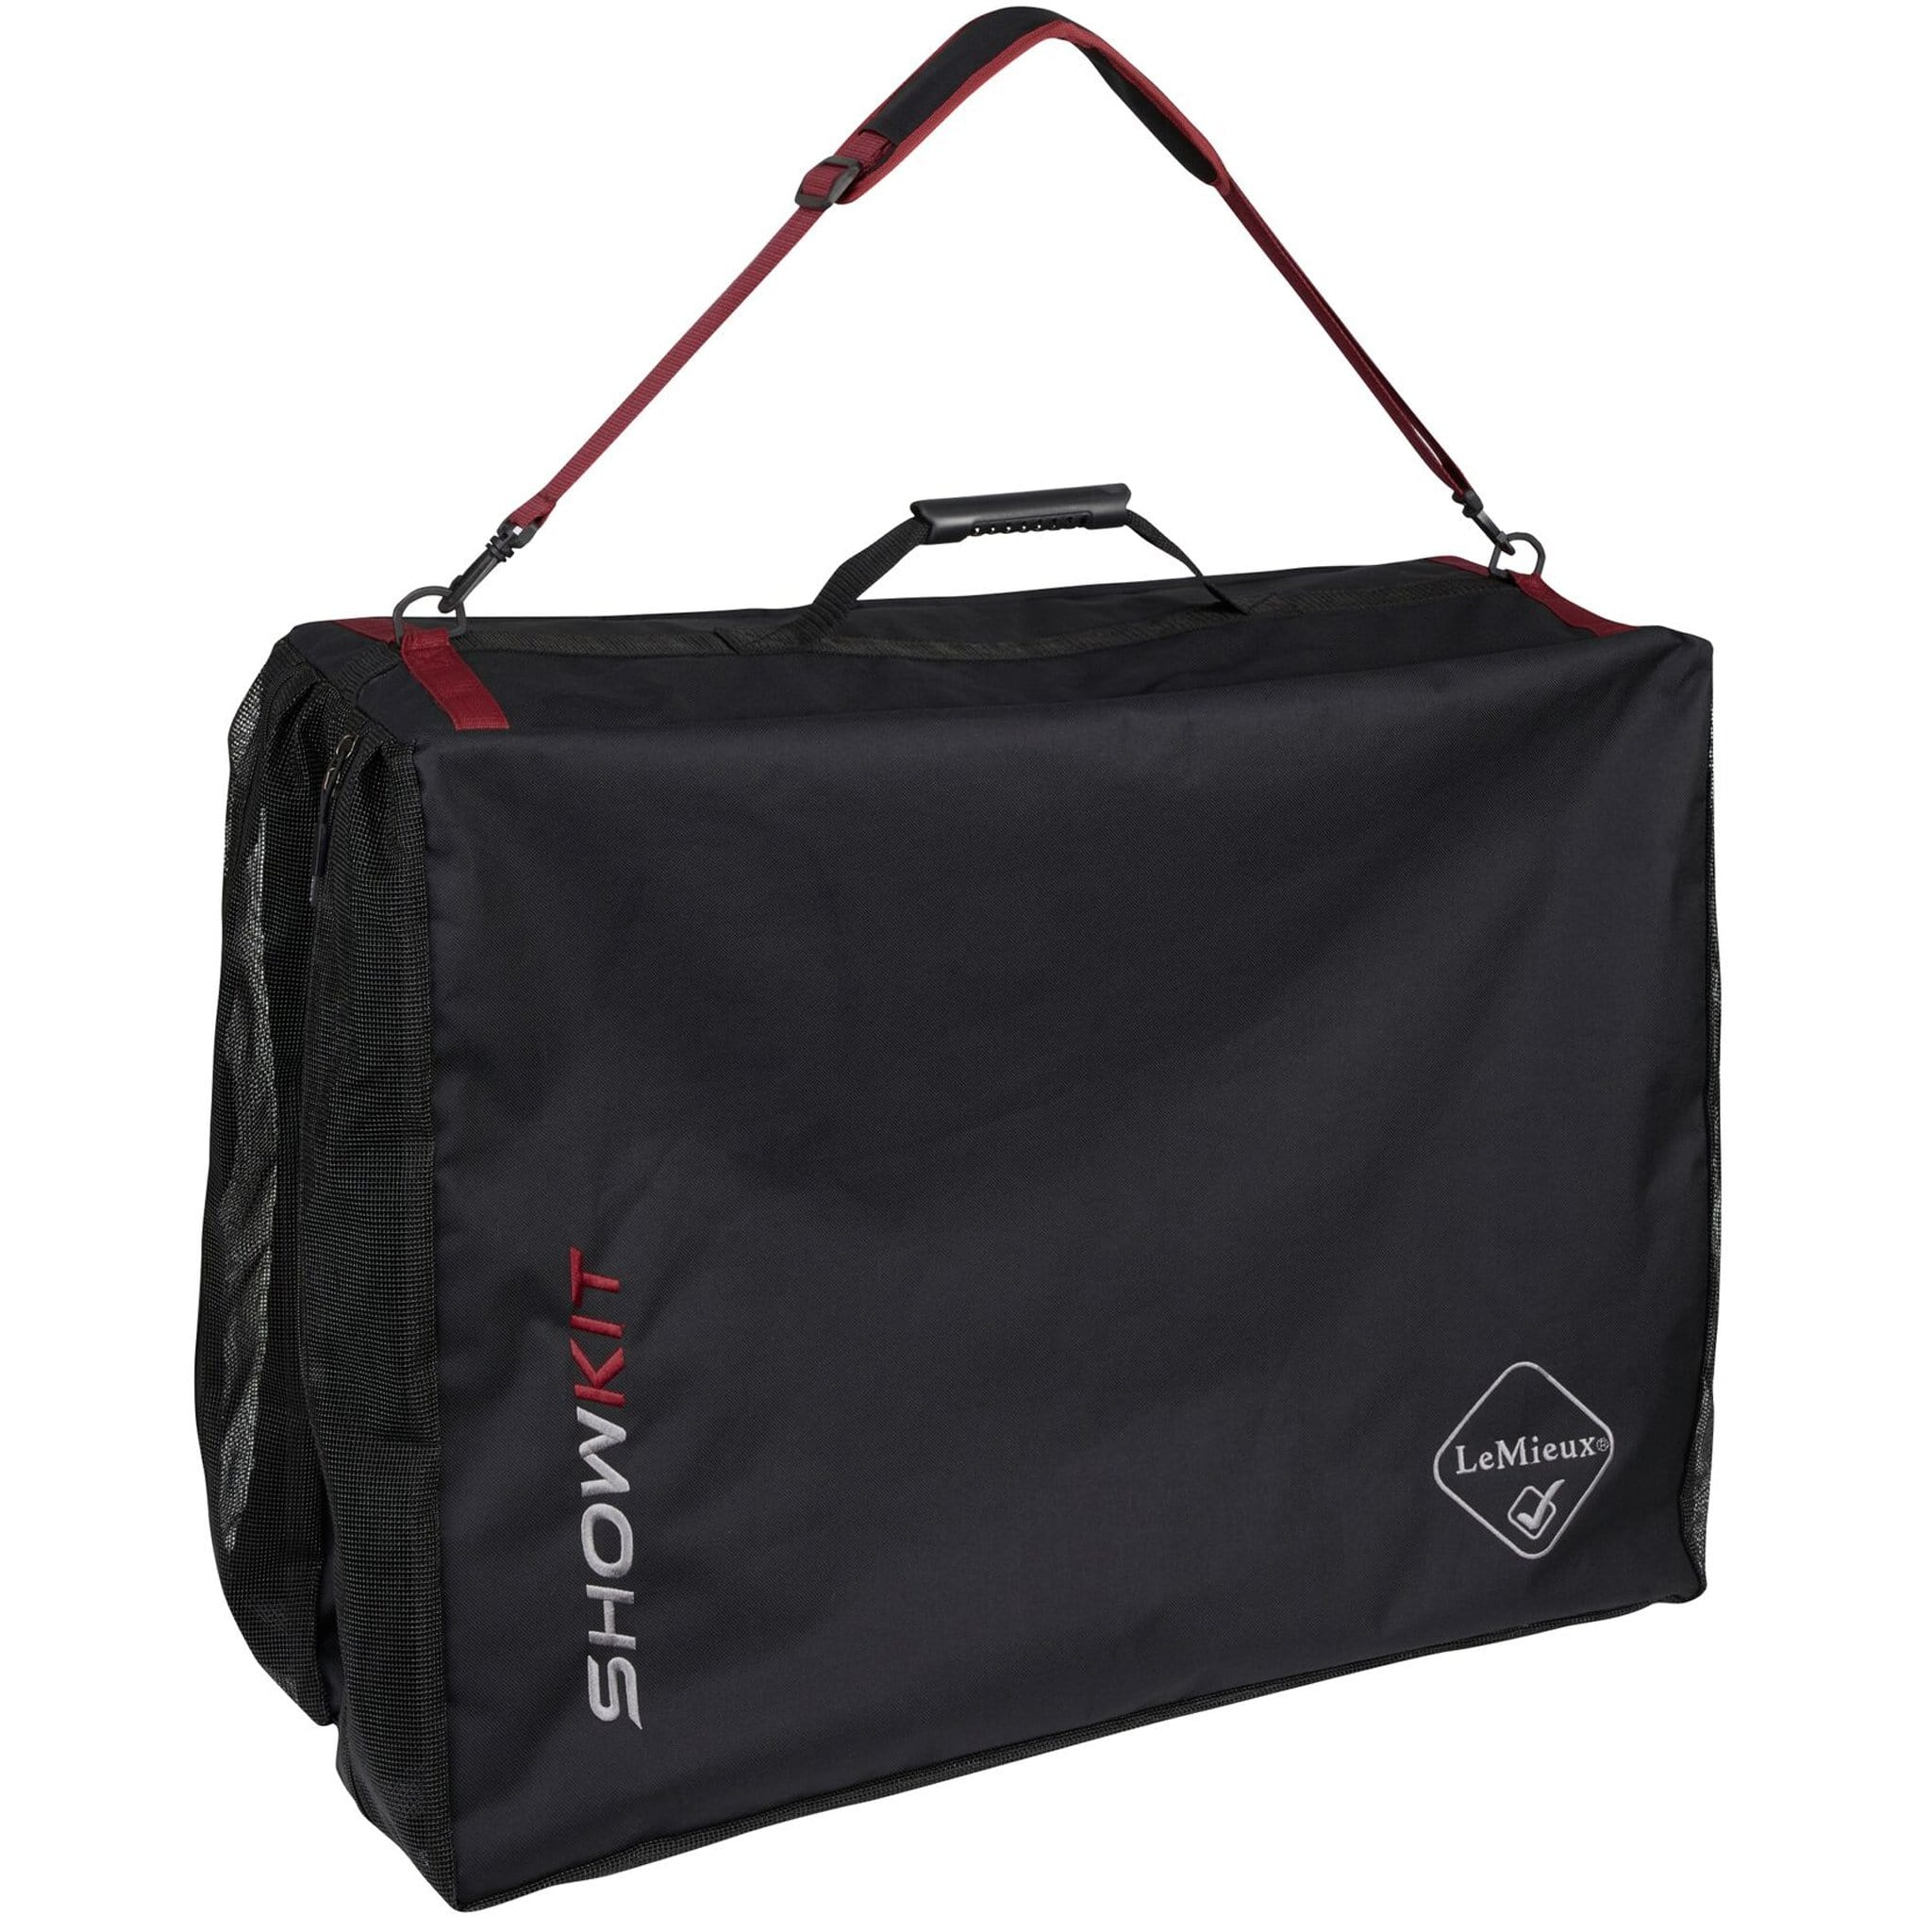 LeMieux ShowKit System Luxury Saddlepad Bag 6245